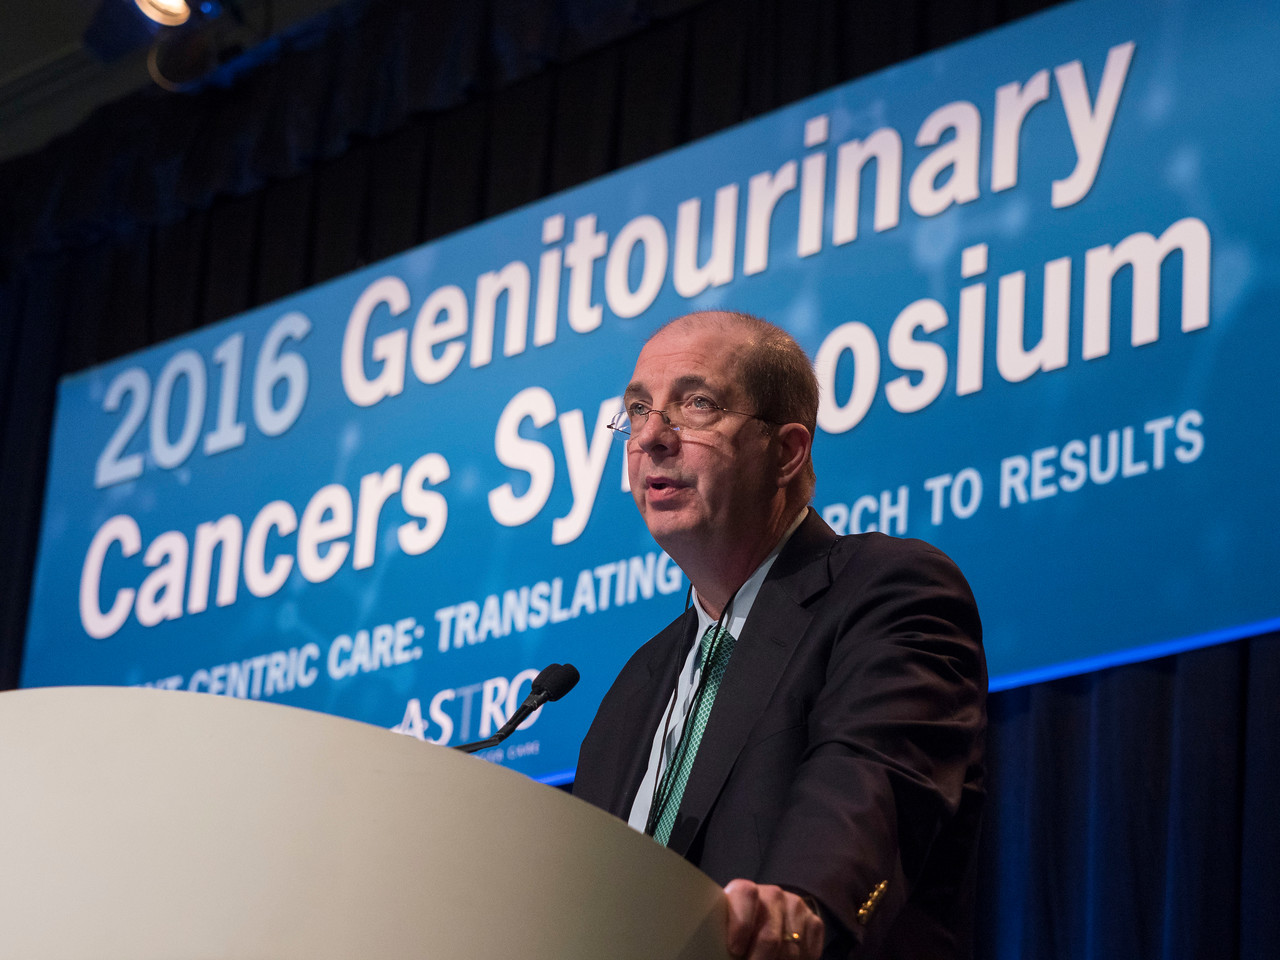 Robert J. Motzer, MD, presenting Abstract 498 - Oral Abstract Session C: Renal Cell Cancer